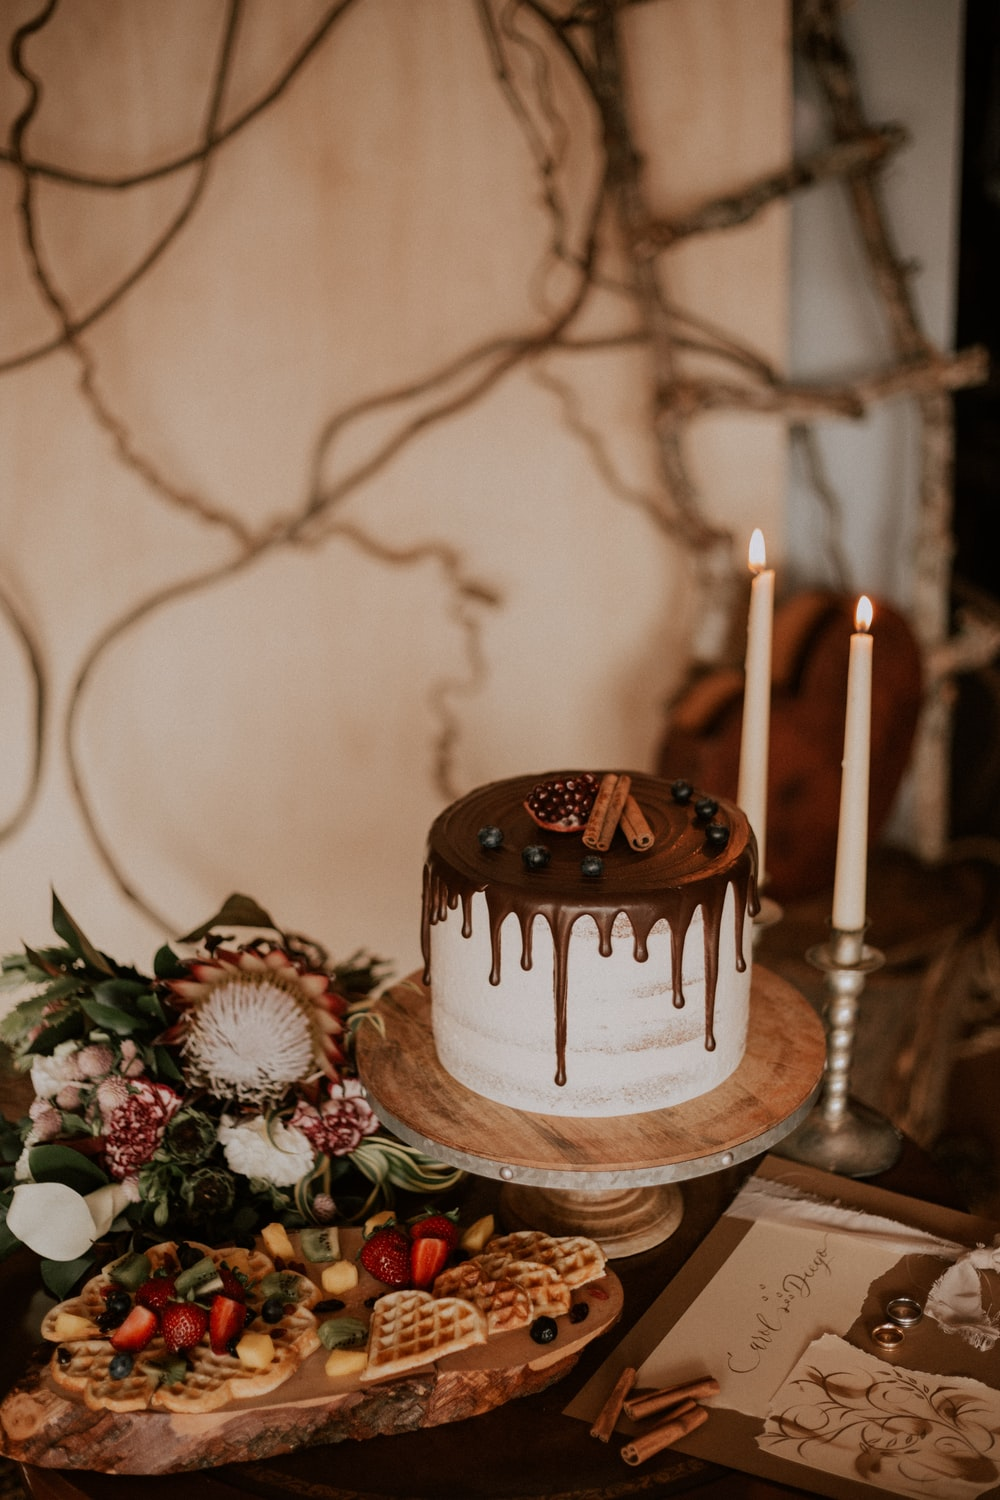 chocolate cake beside candles